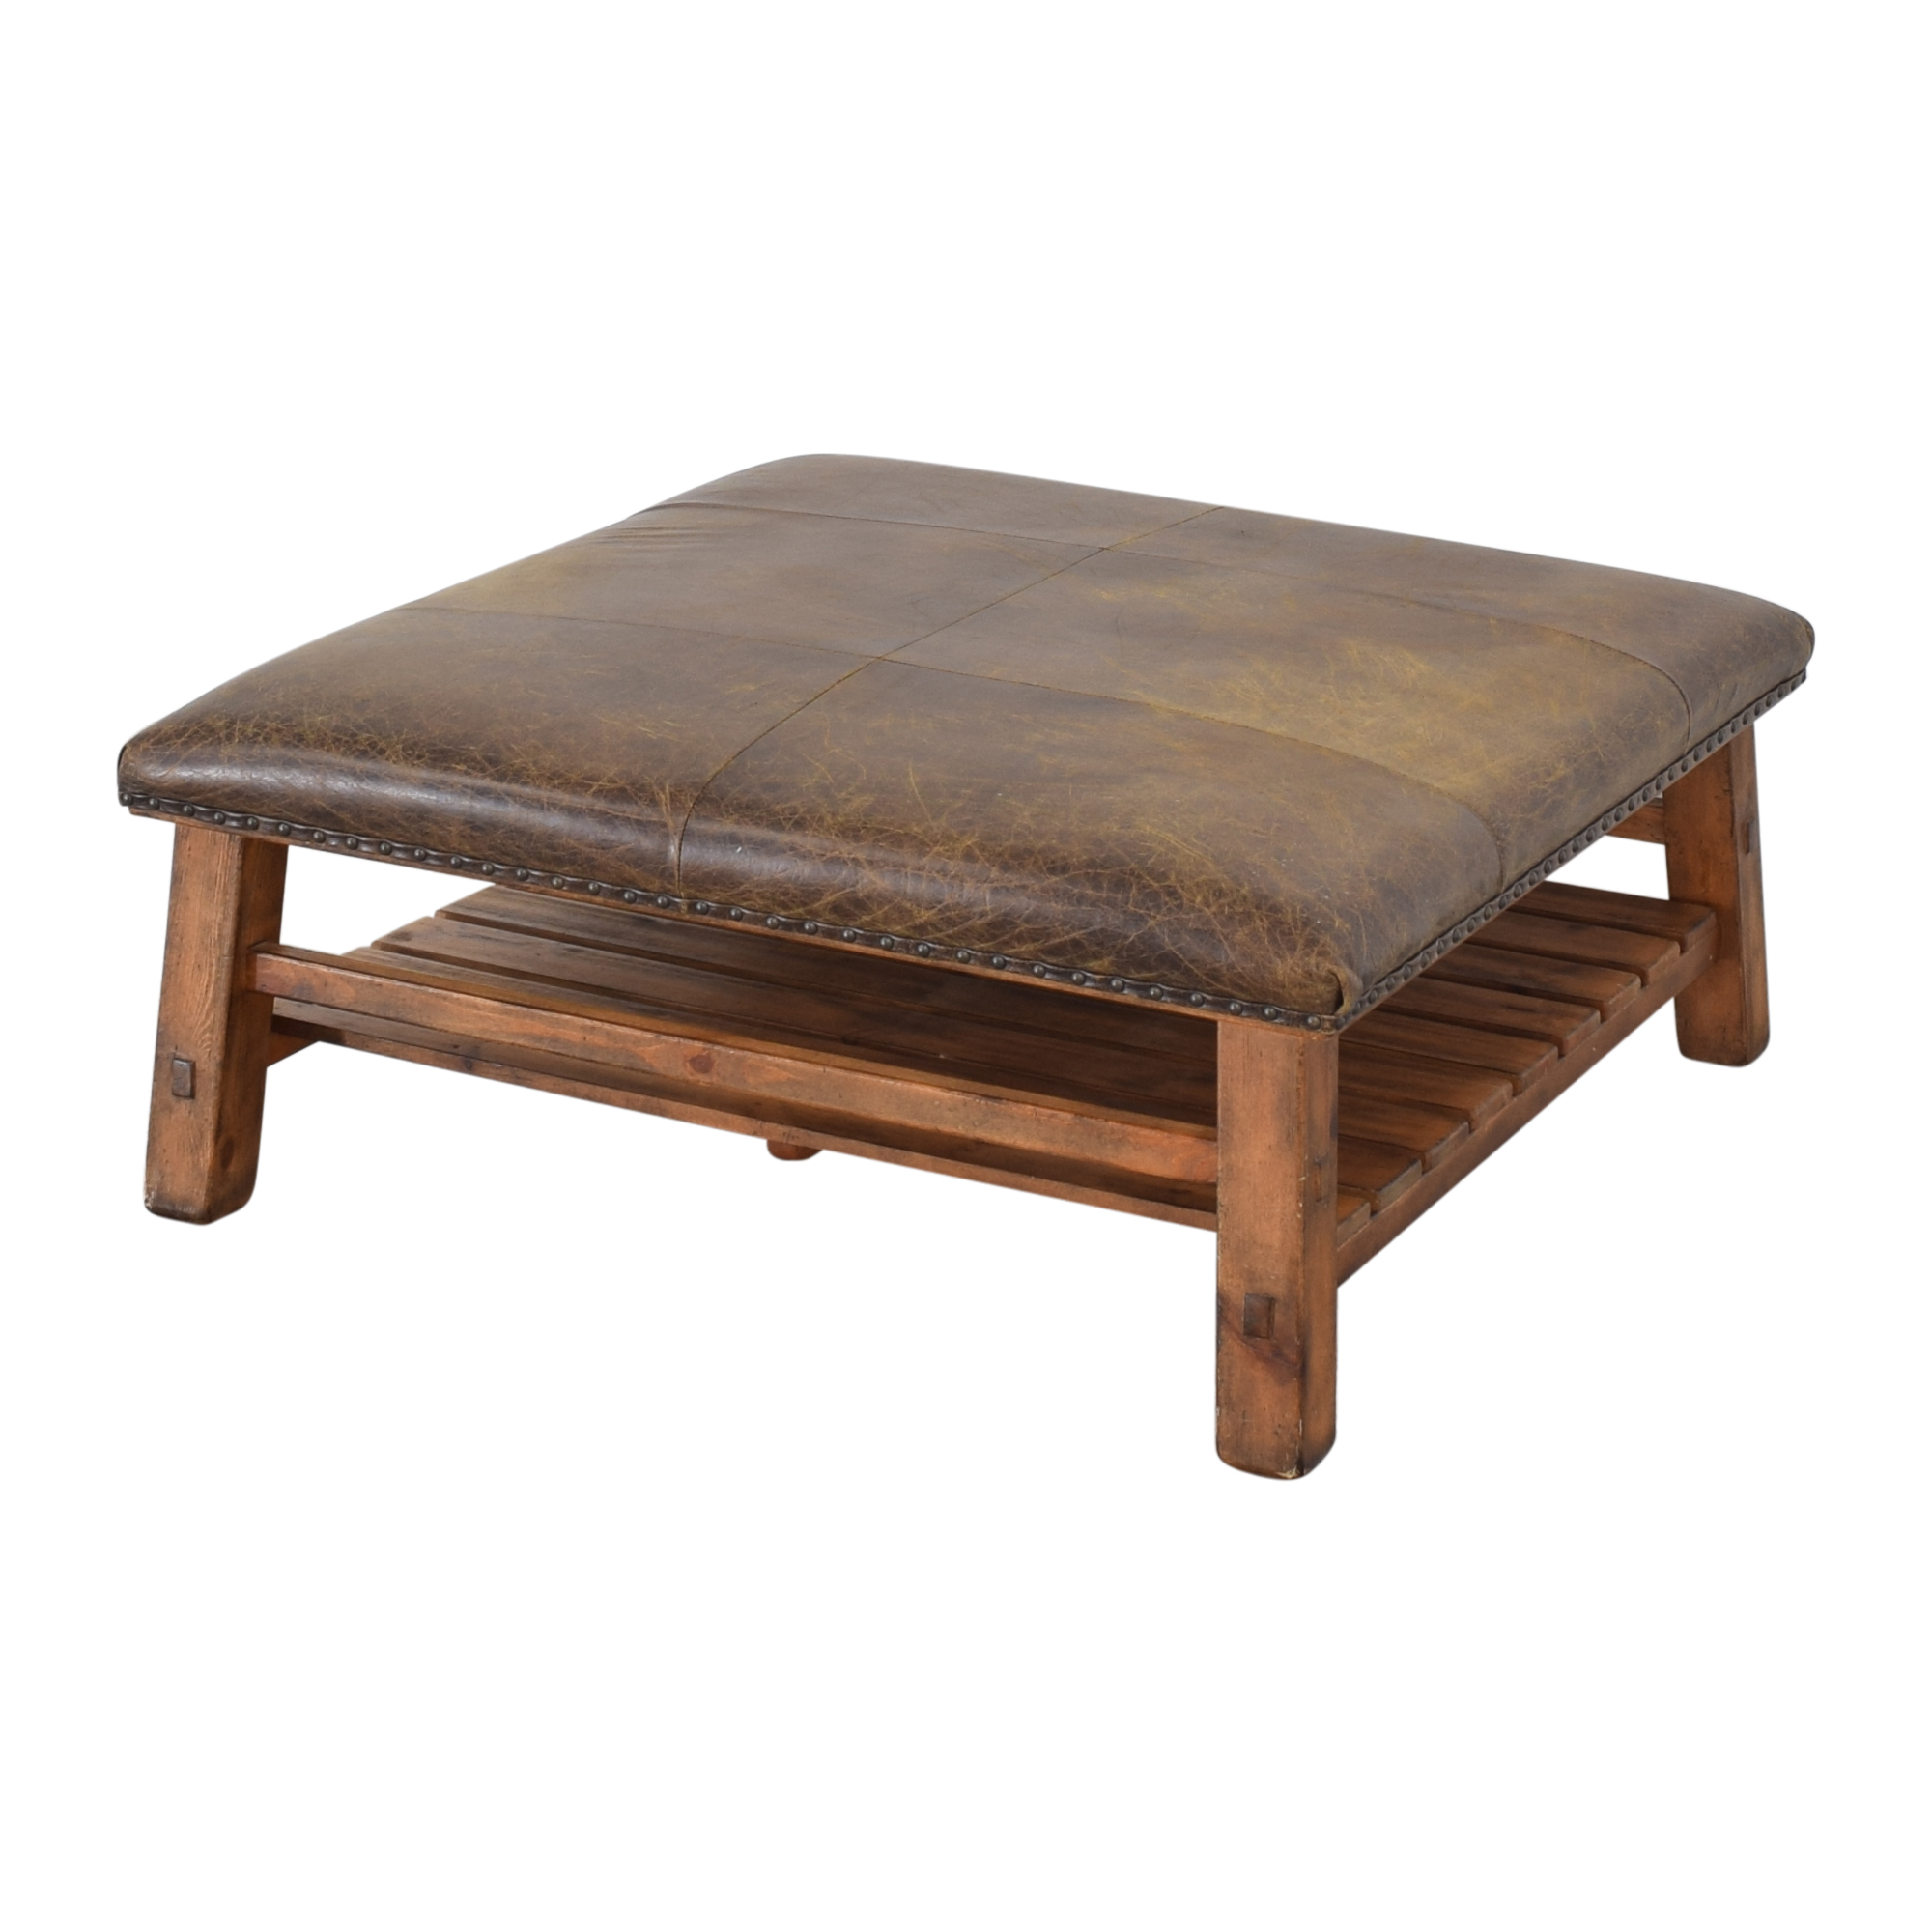 66 off pottery barn pottery barn caden square ottoman or coffee table tables